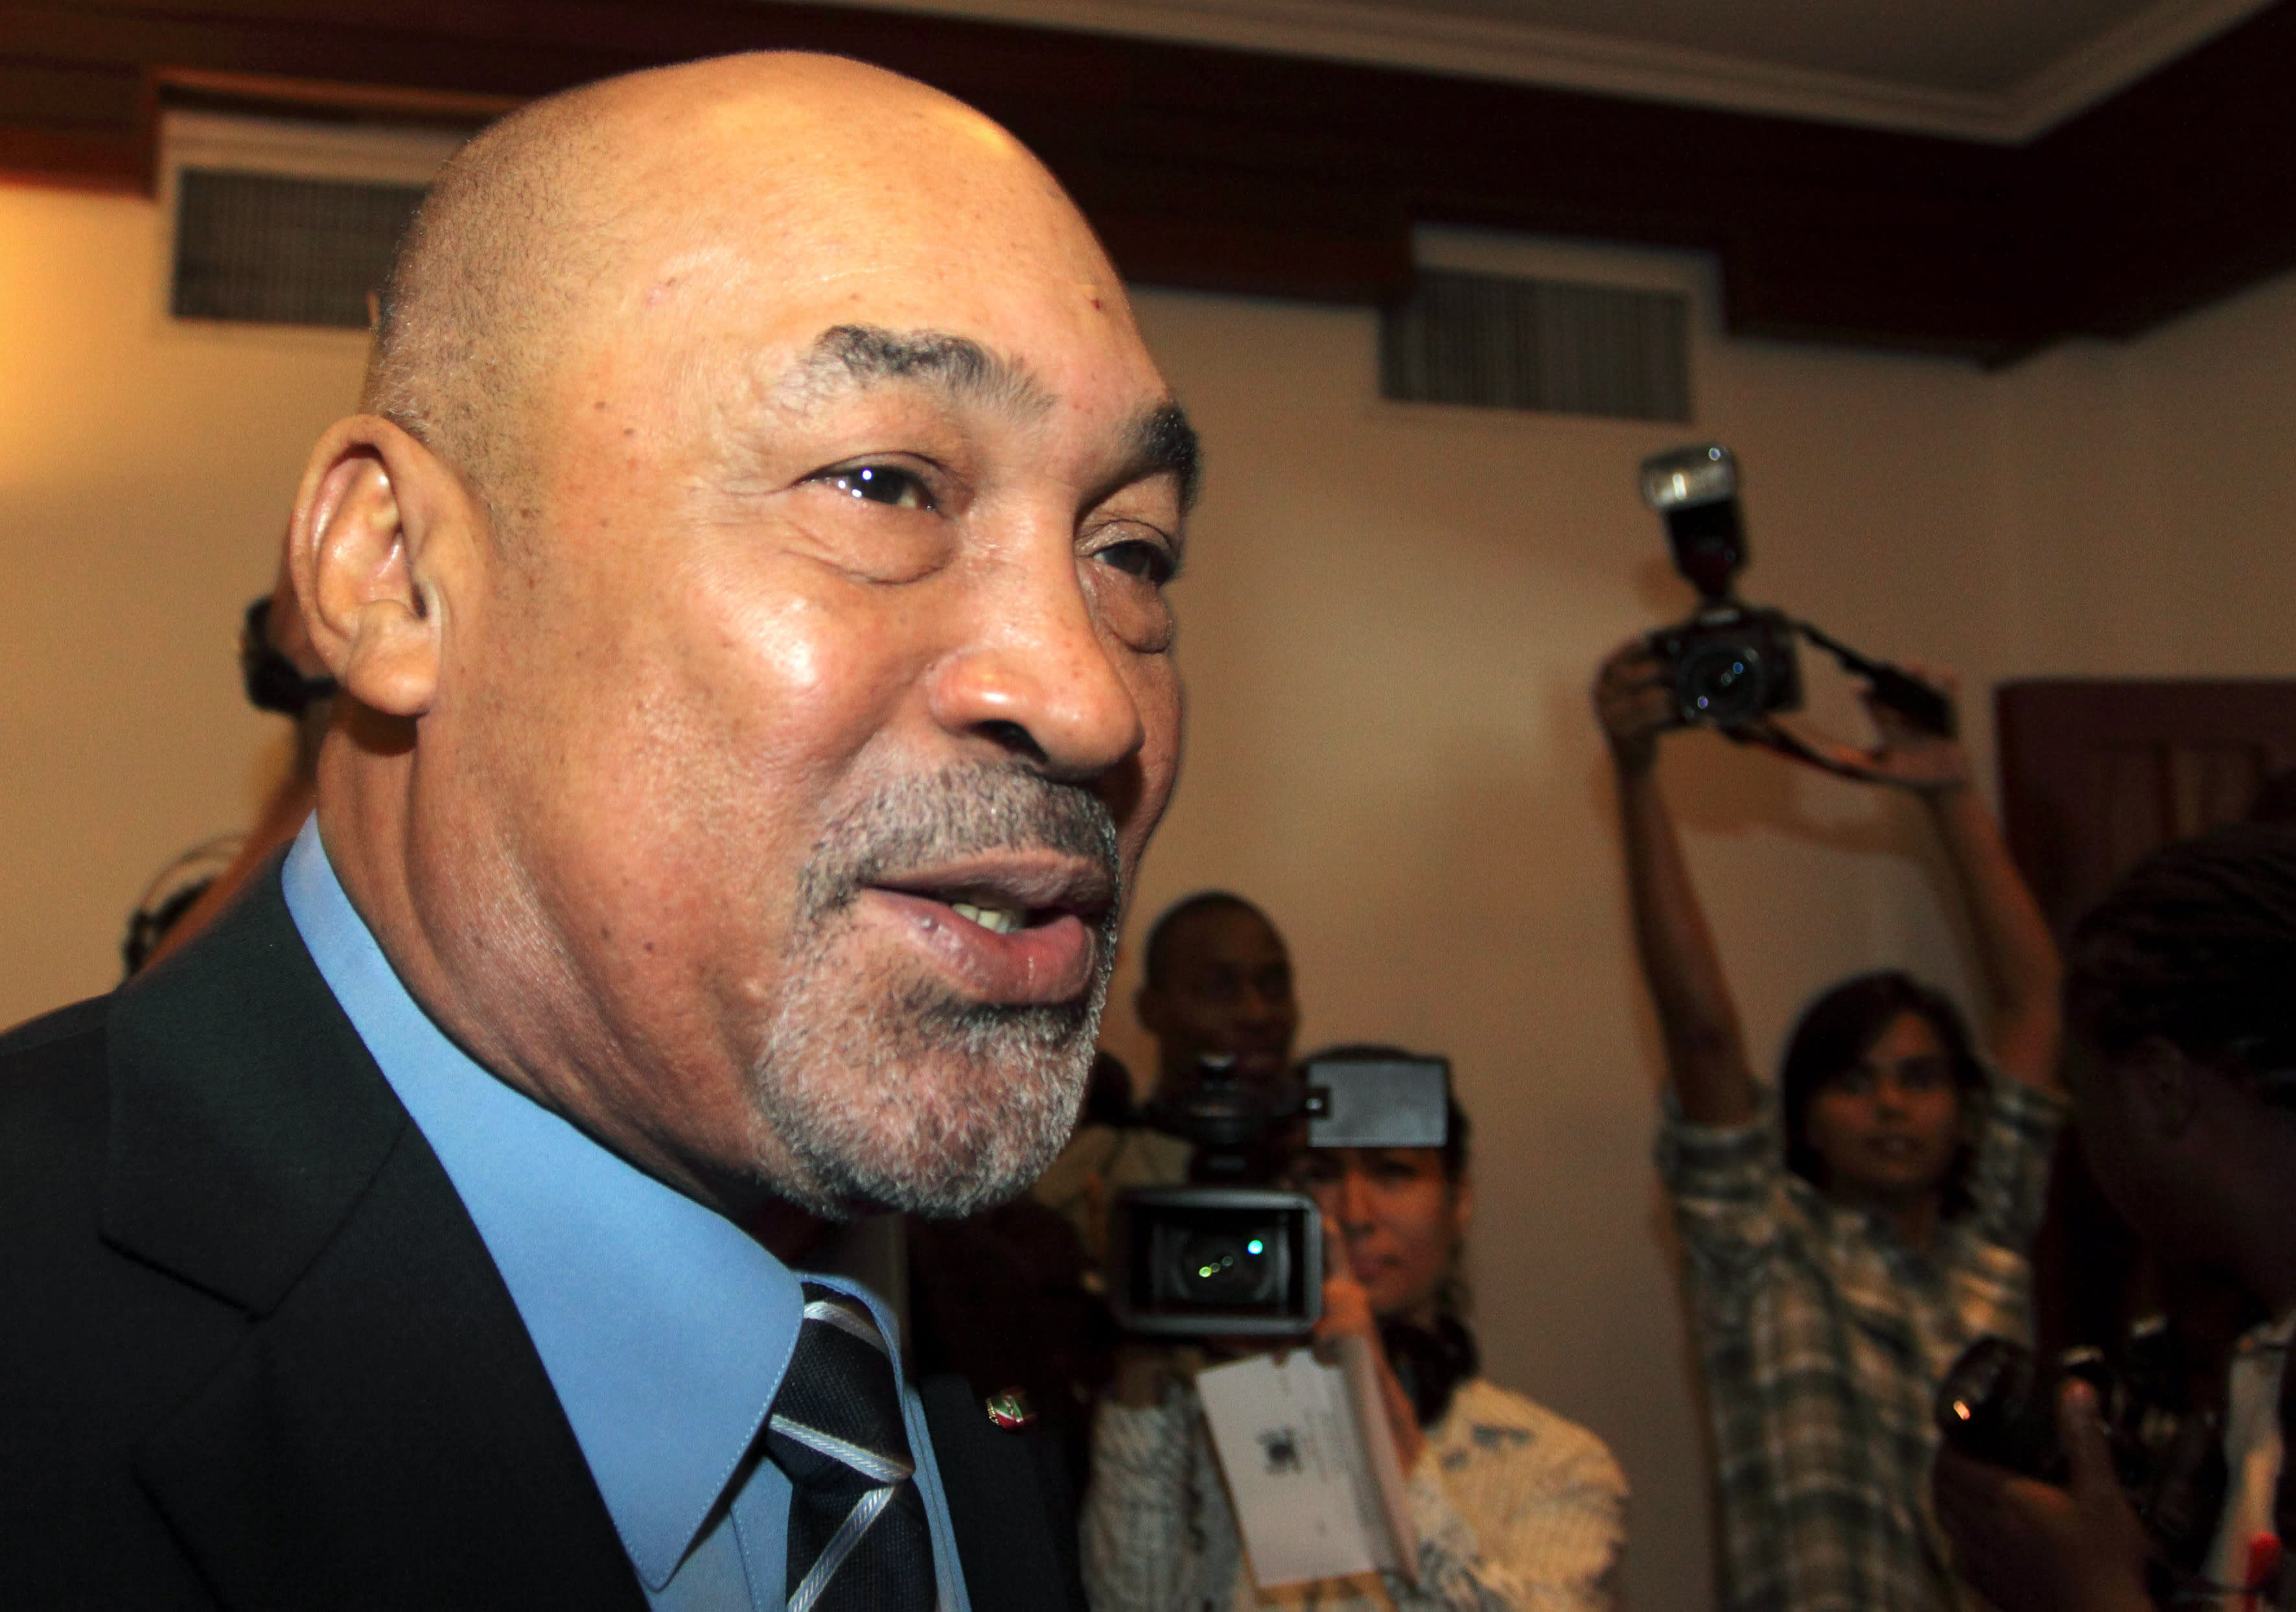 Elections in Suriname to decide gov't for next 5 years